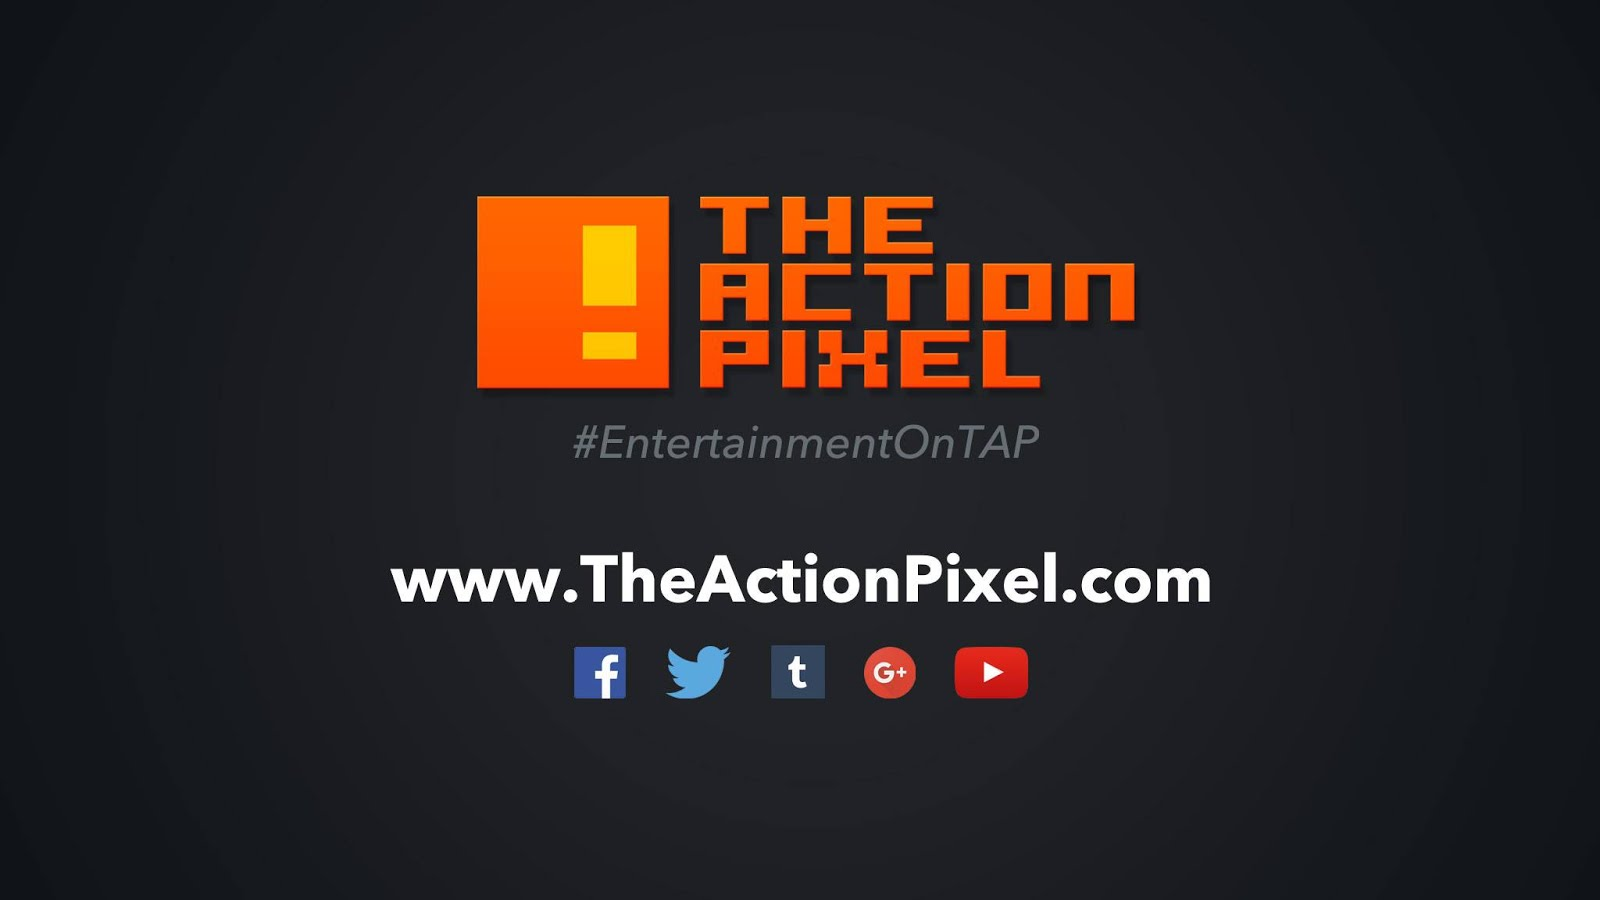 Join THE ACTION PIXEL collective!